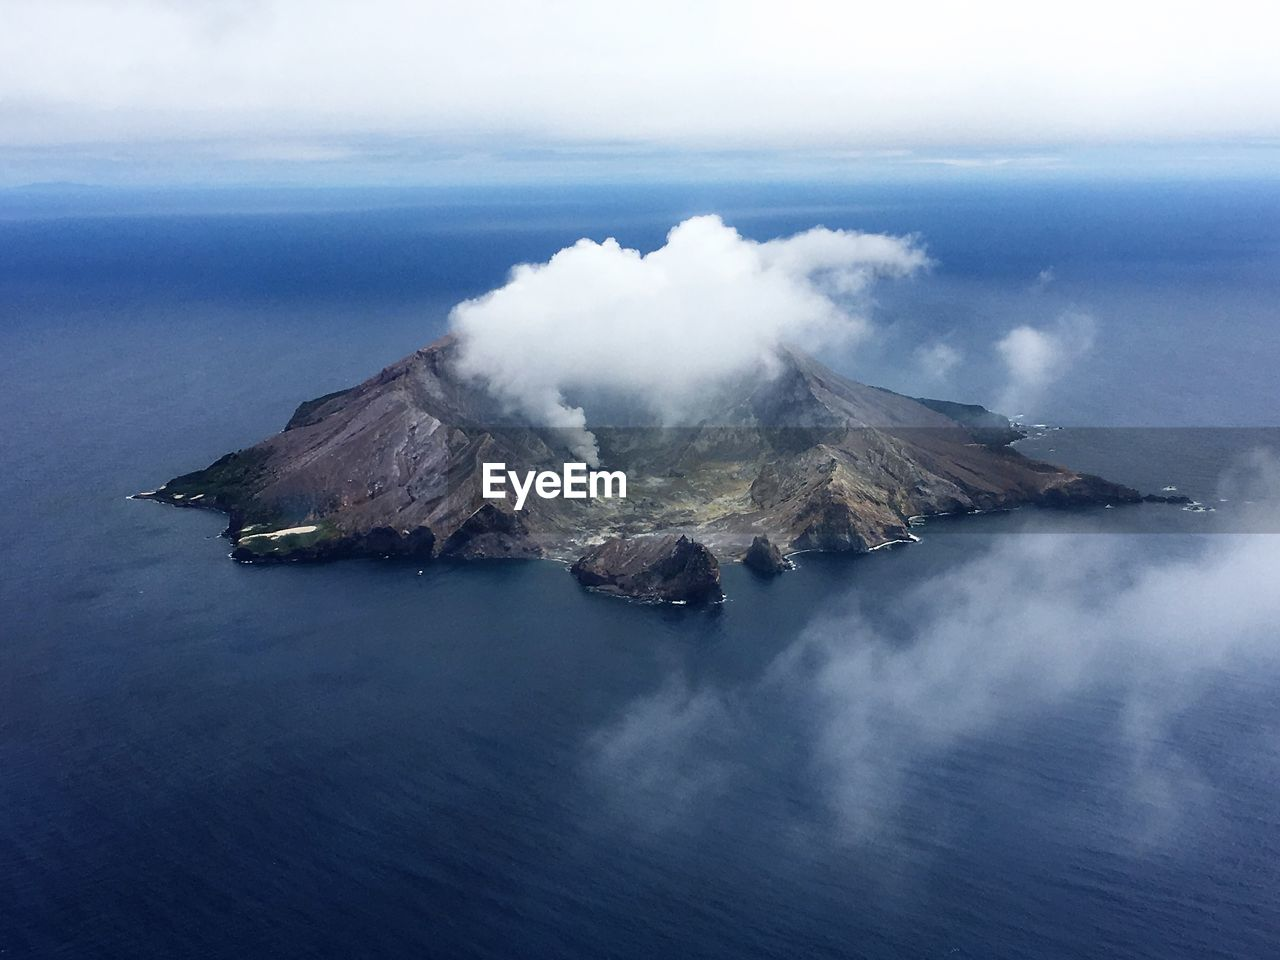 One of the last active volcanos